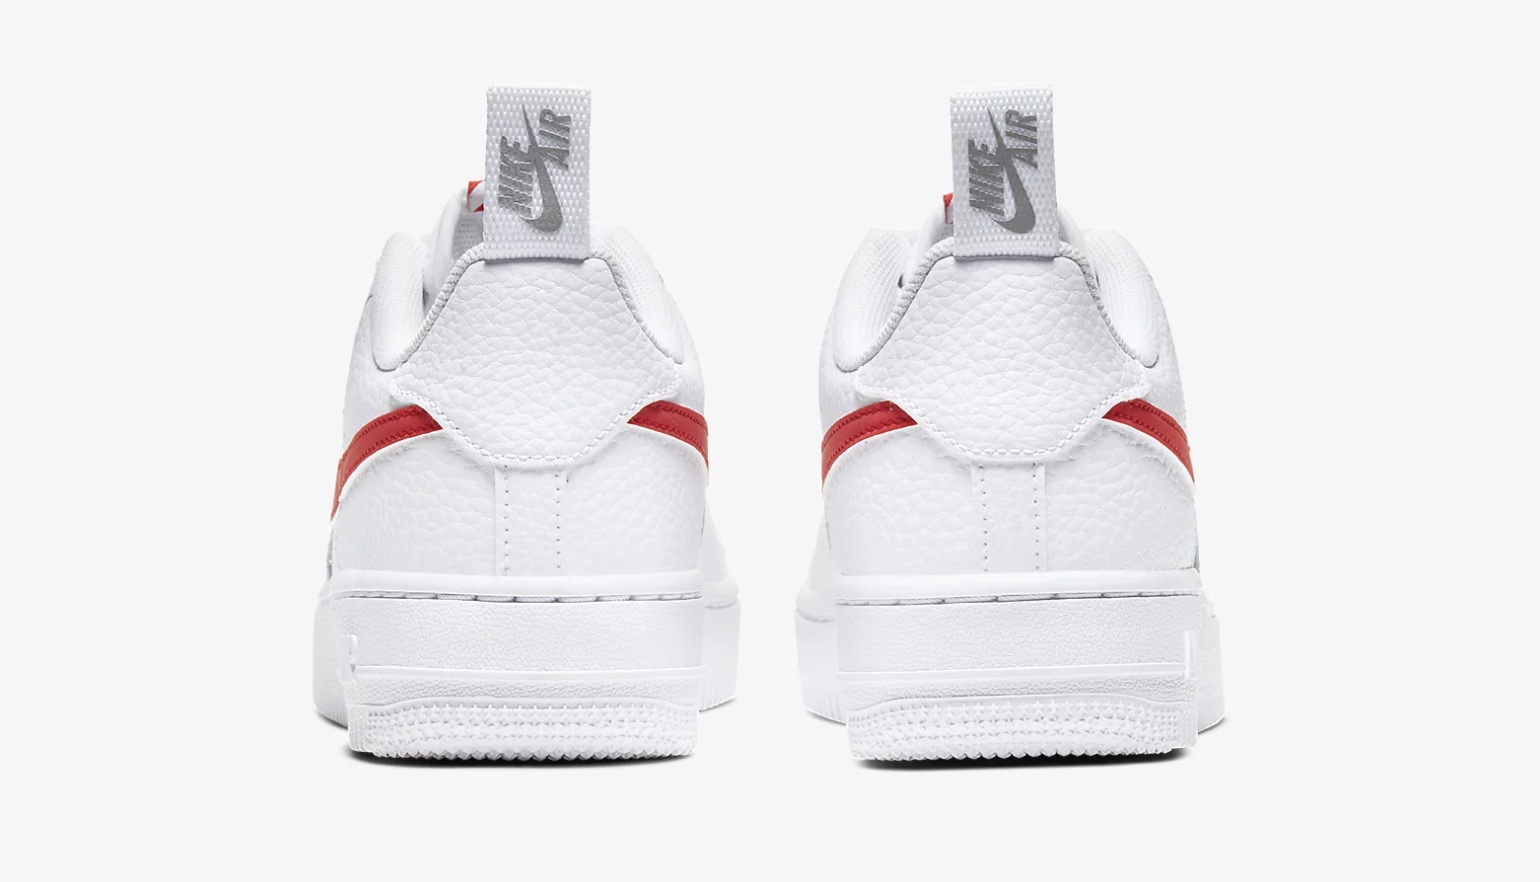 Nike Air Force 1 Utility White Red CZ4203-100 3 heel